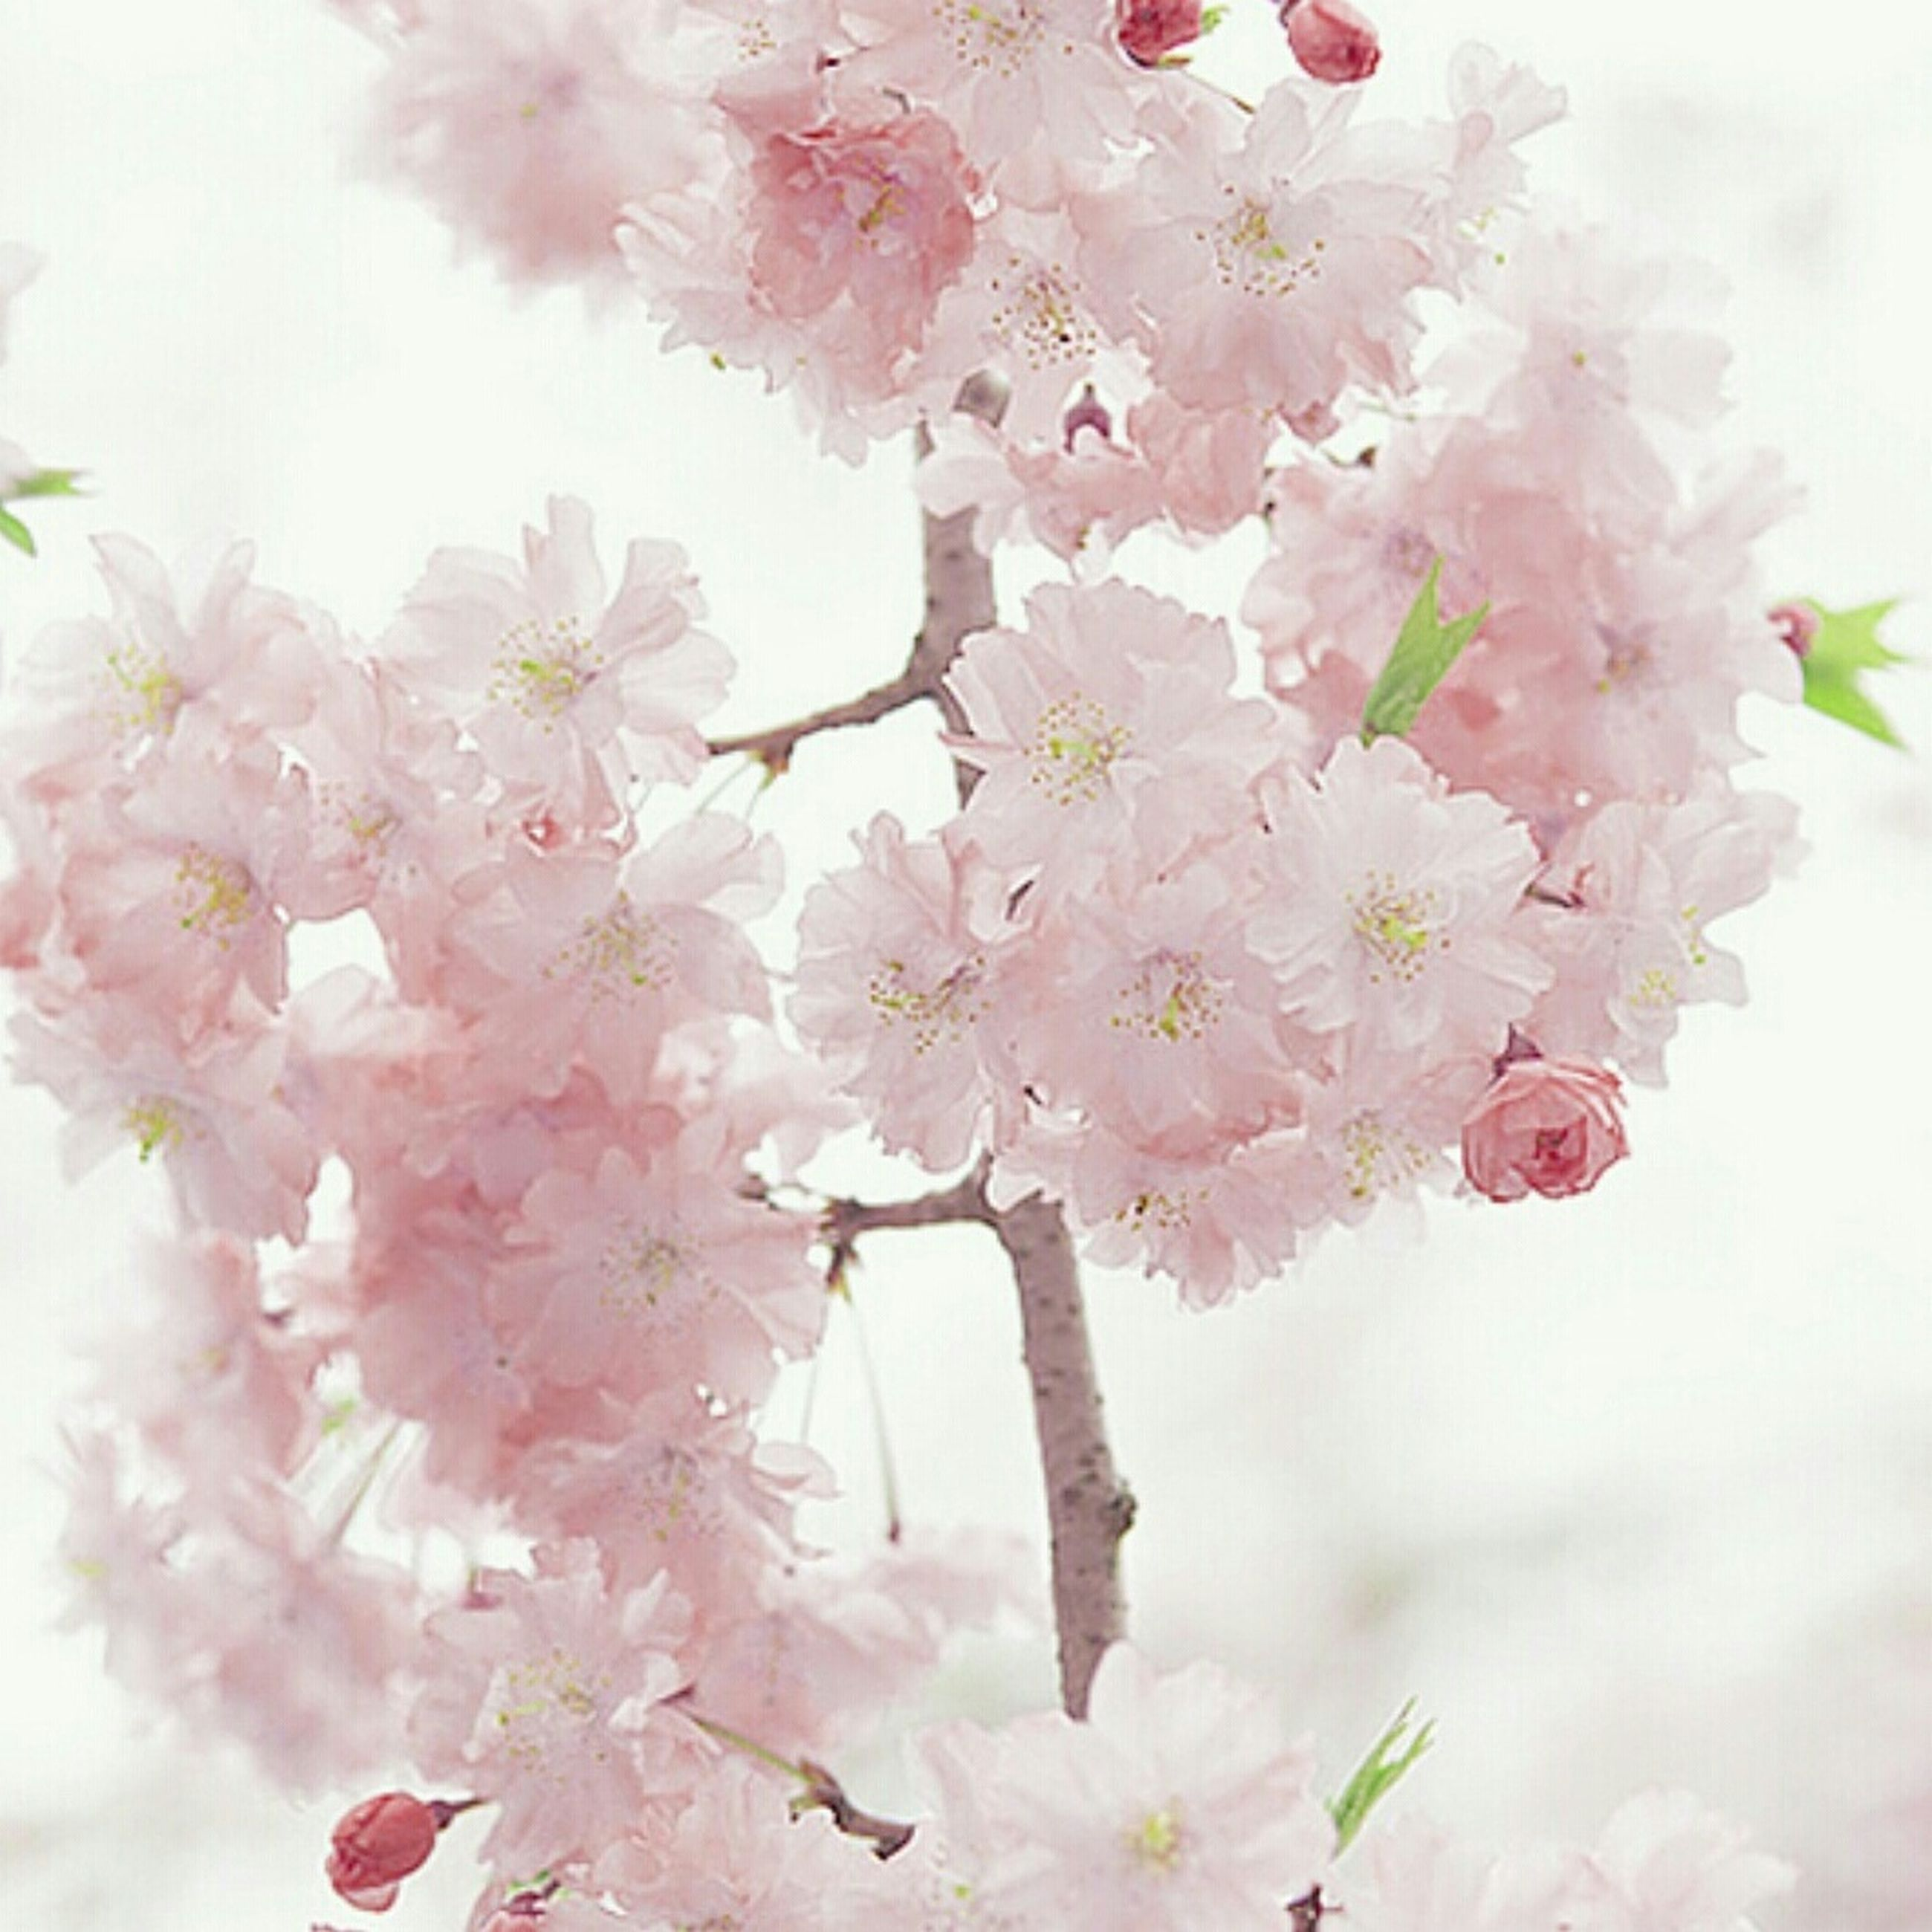 flower, freshness, fragility, petal, beauty in nature, growth, blossom, nature, branch, cherry blossom, blooming, in bloom, pink color, cherry tree, white color, low angle view, tree, close-up, flower head, bunch of flowers